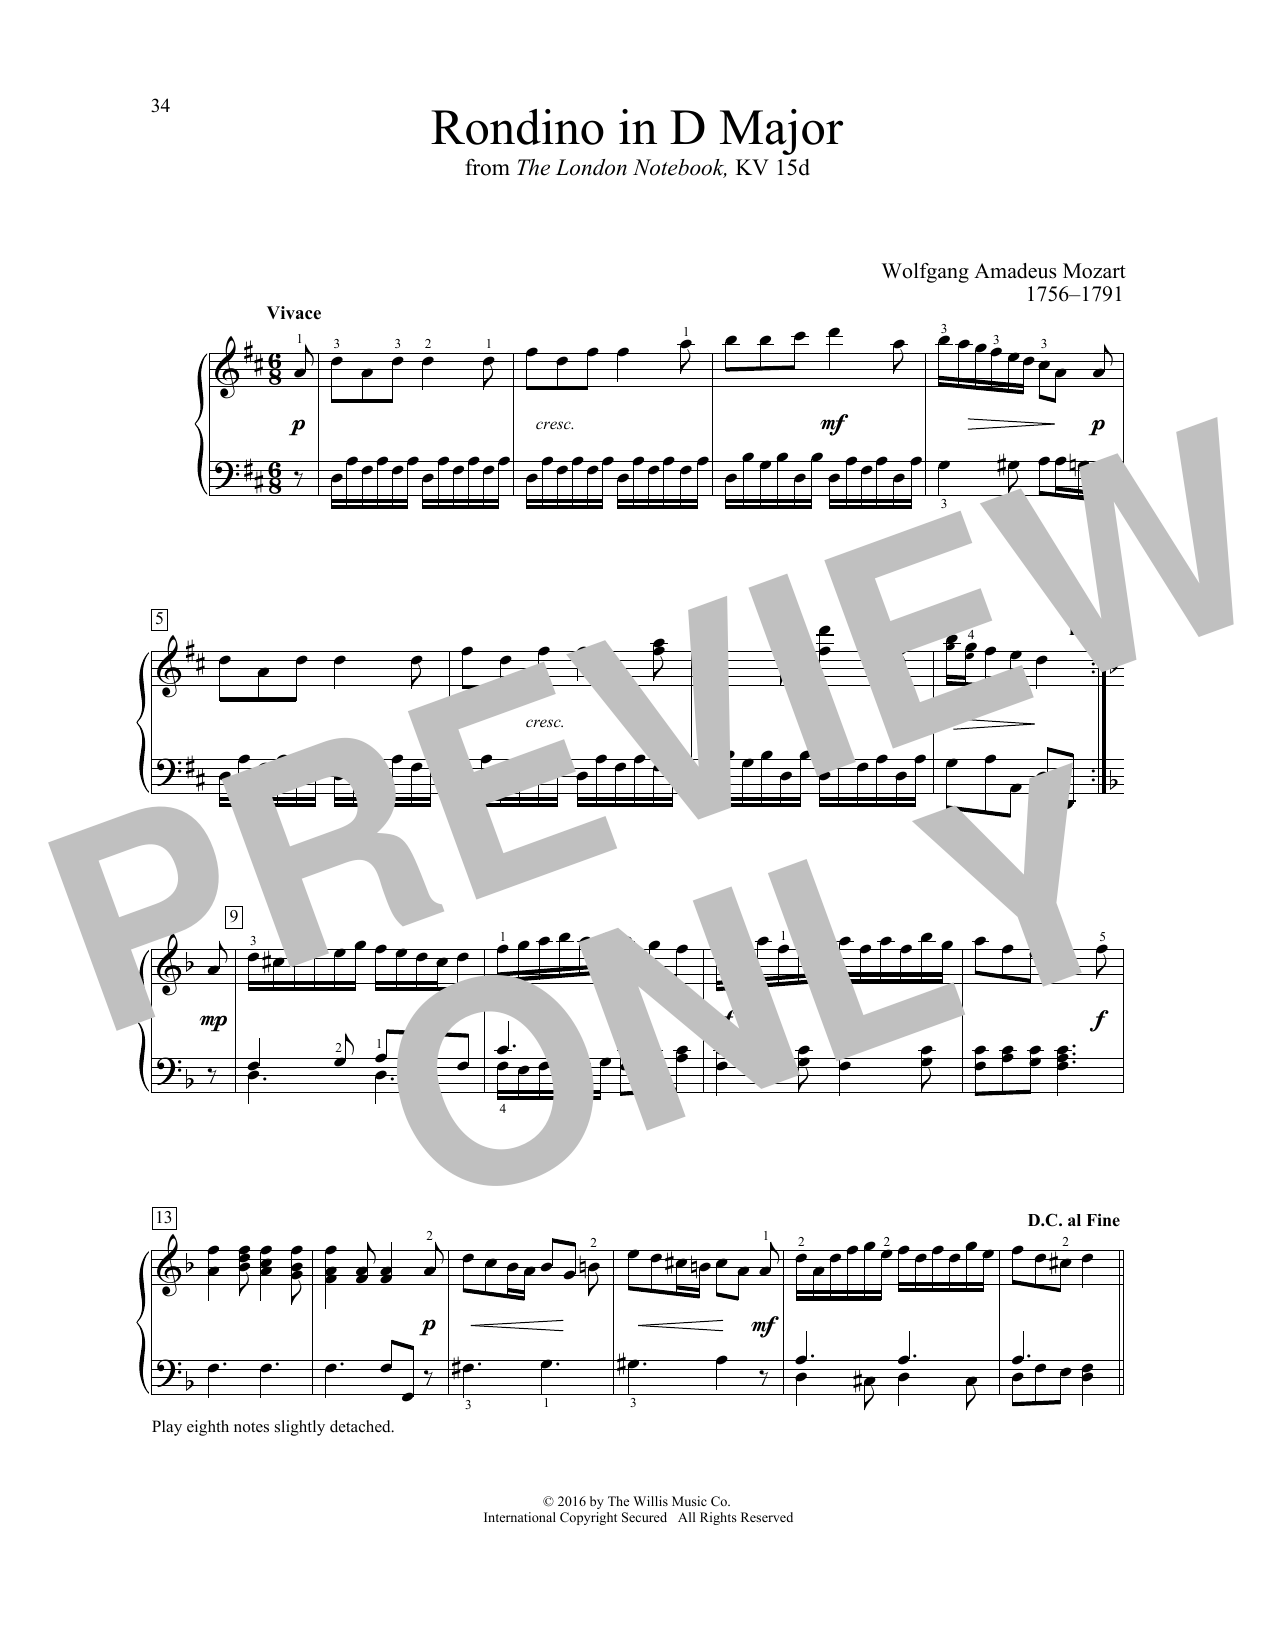 Wolfgang Amadeus Mozart Rondino In D Major sheet music notes and chords. Download Printable PDF.